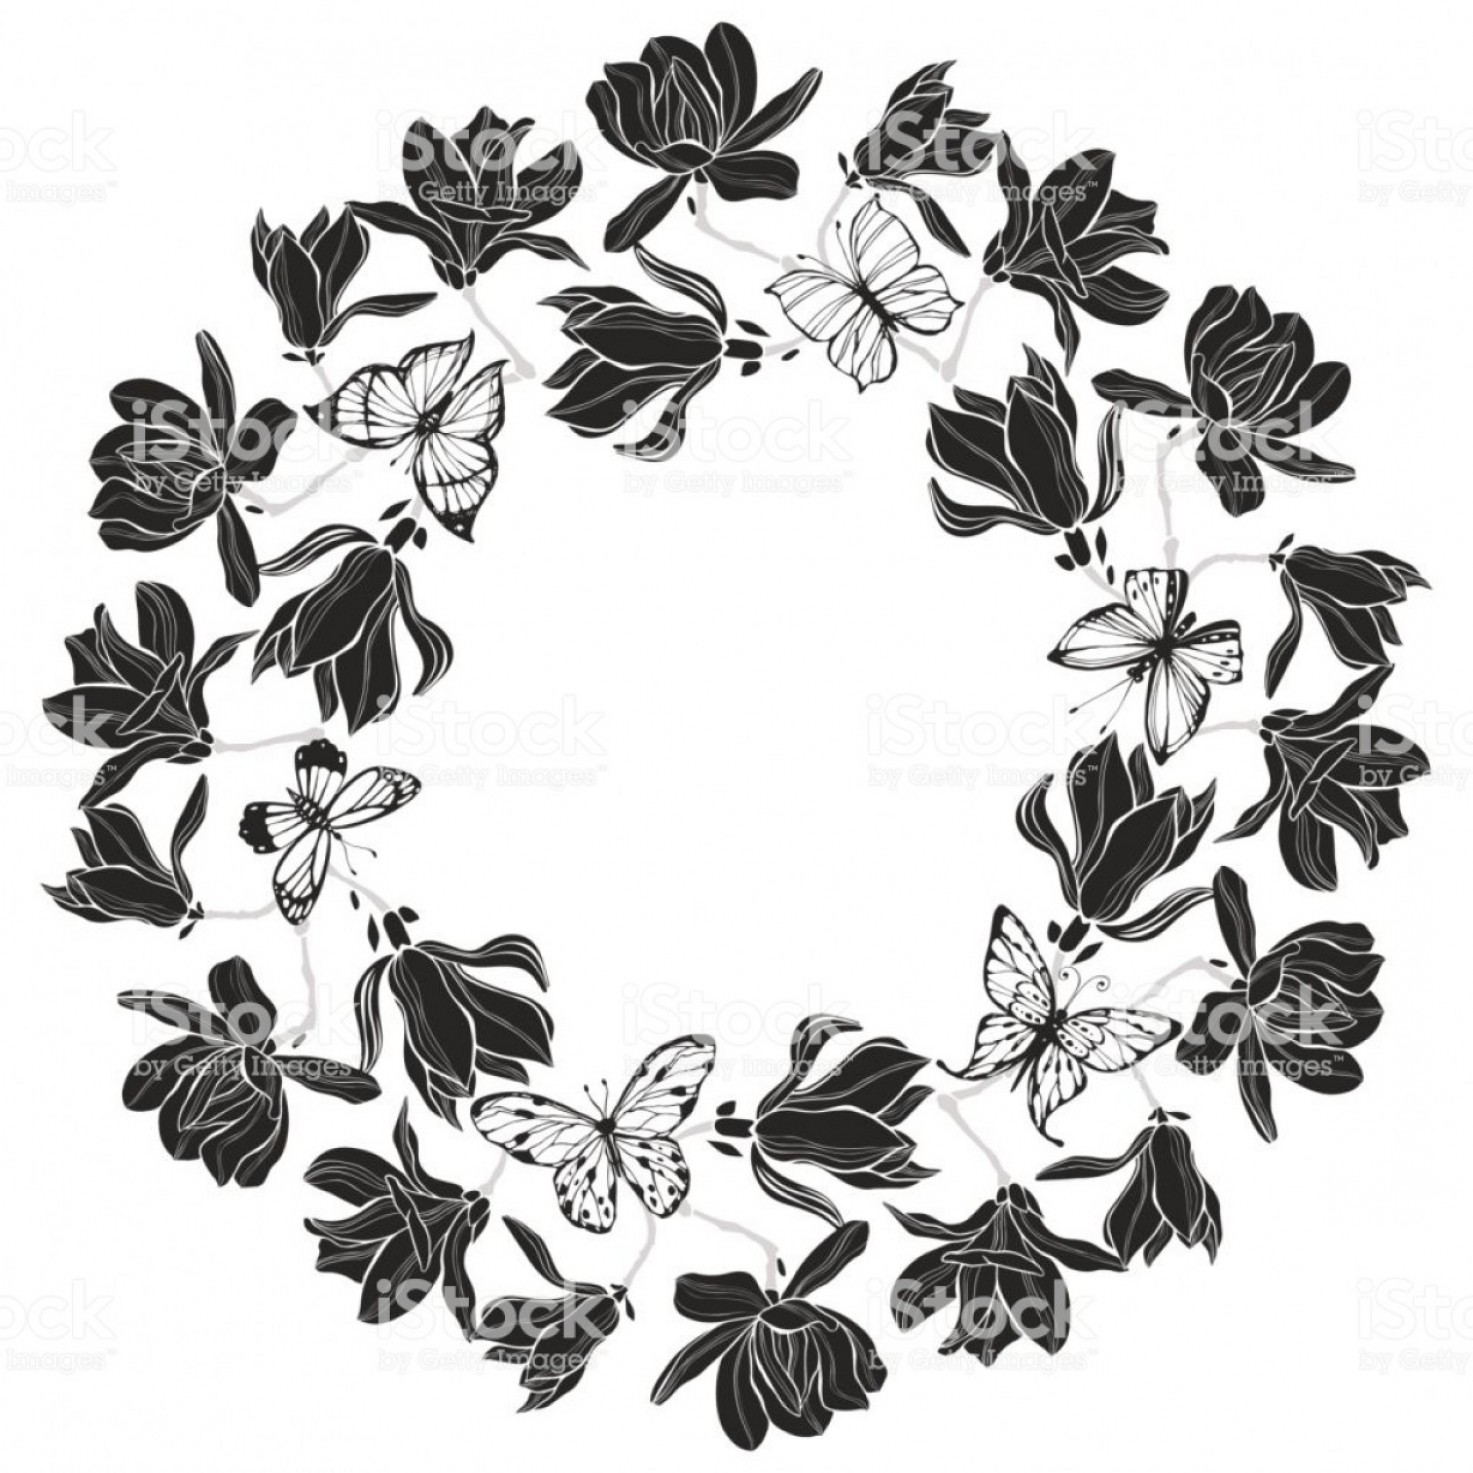 Magnolia Black And White Vector: Floral Vector Background With Magnolia And Butterflies Black And White Vector Gm